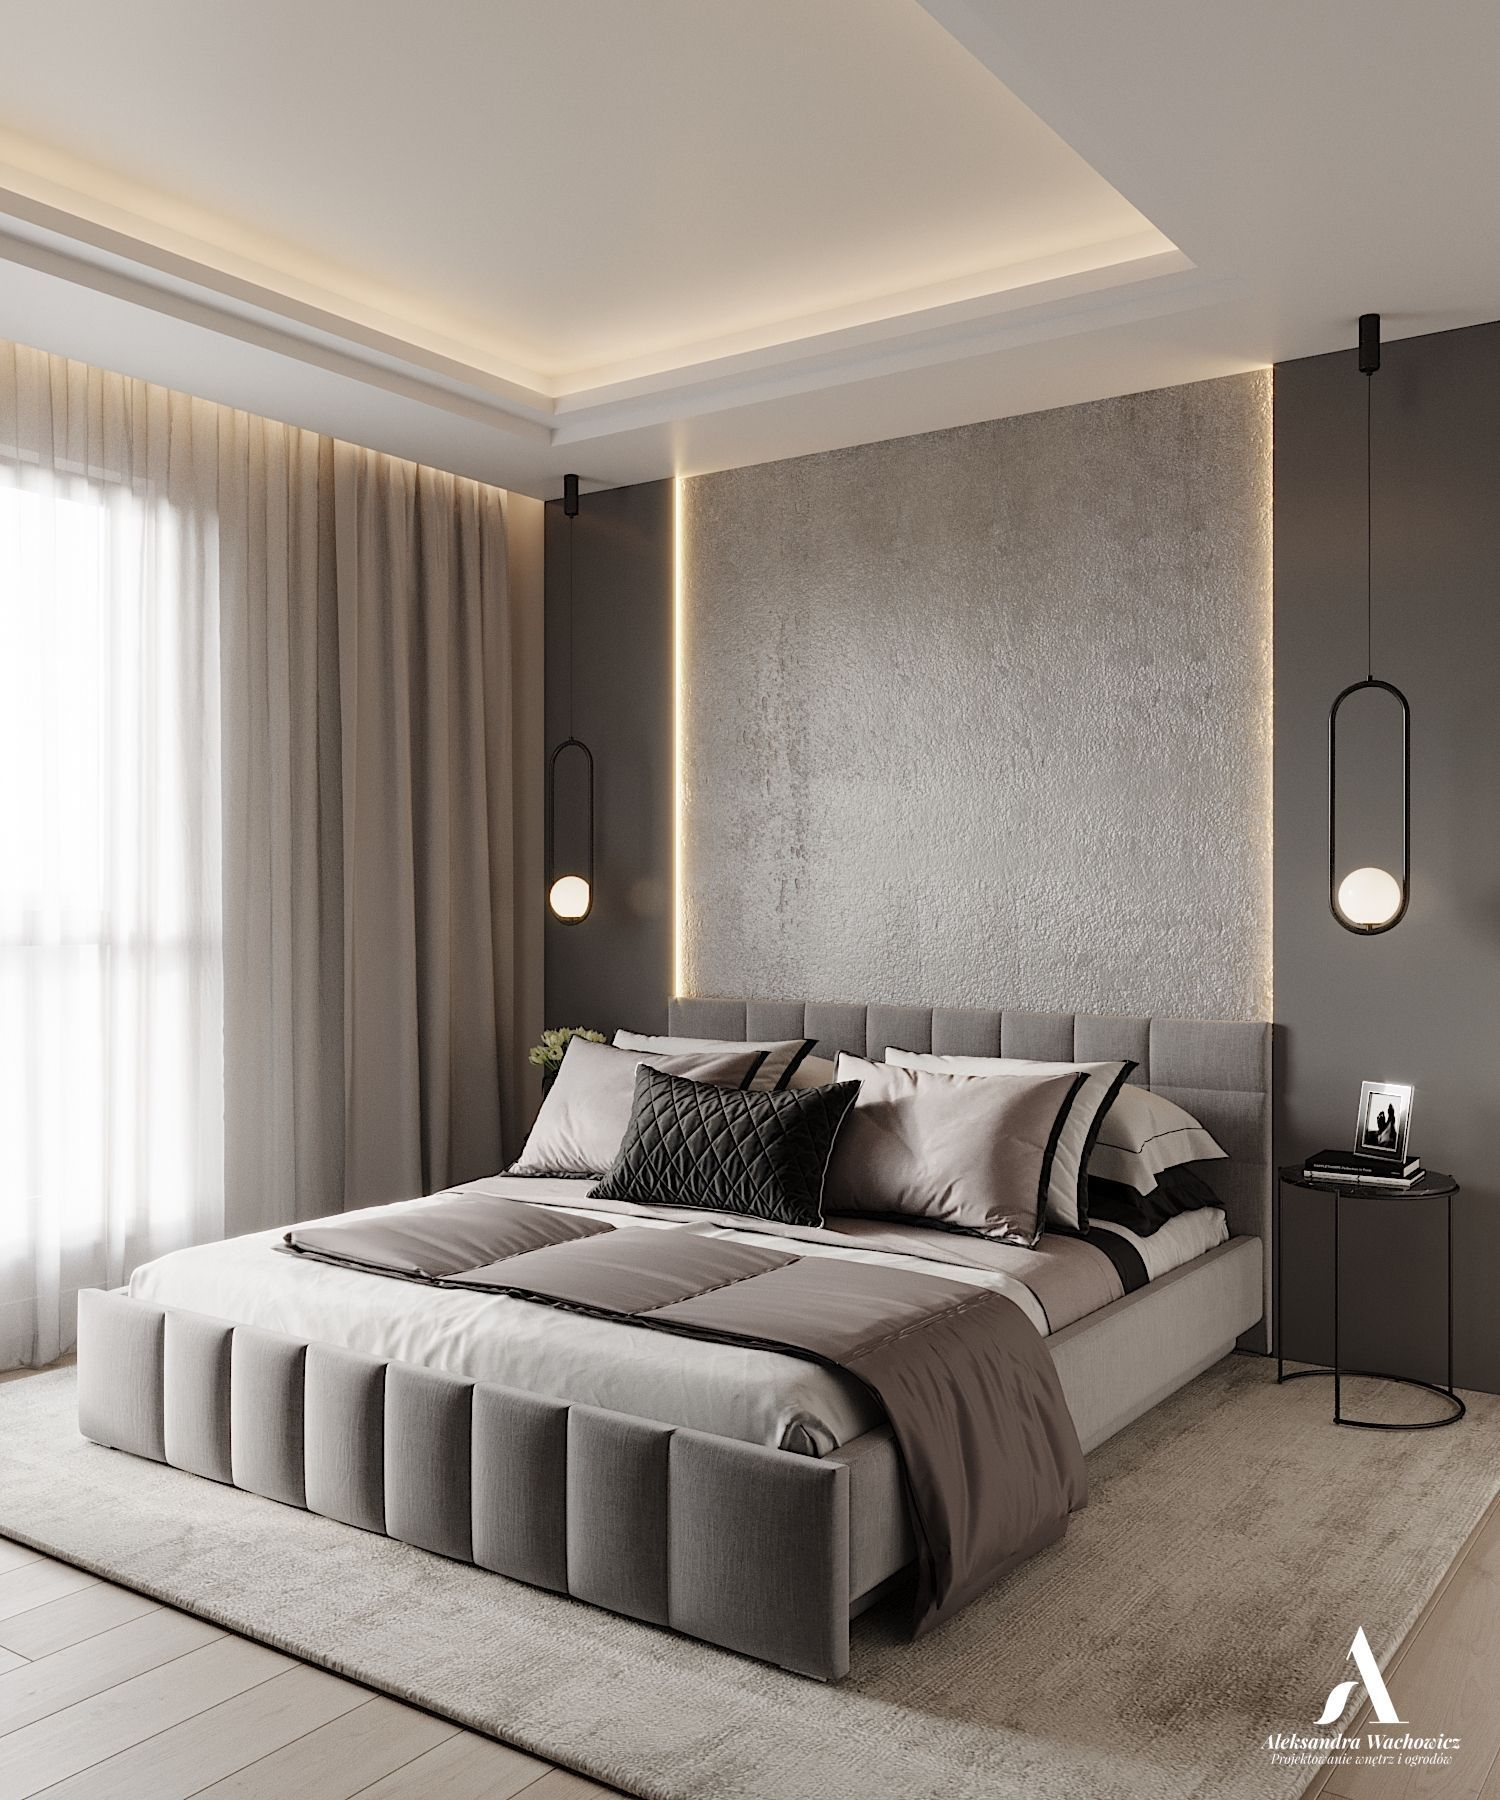 Concrete Bedroom If You Are Interested What The Current Trends In Stylish Modern Design Ar In 2020 Luxurious Bedrooms Luxury Bedroom Master Bedroom Furniture Design